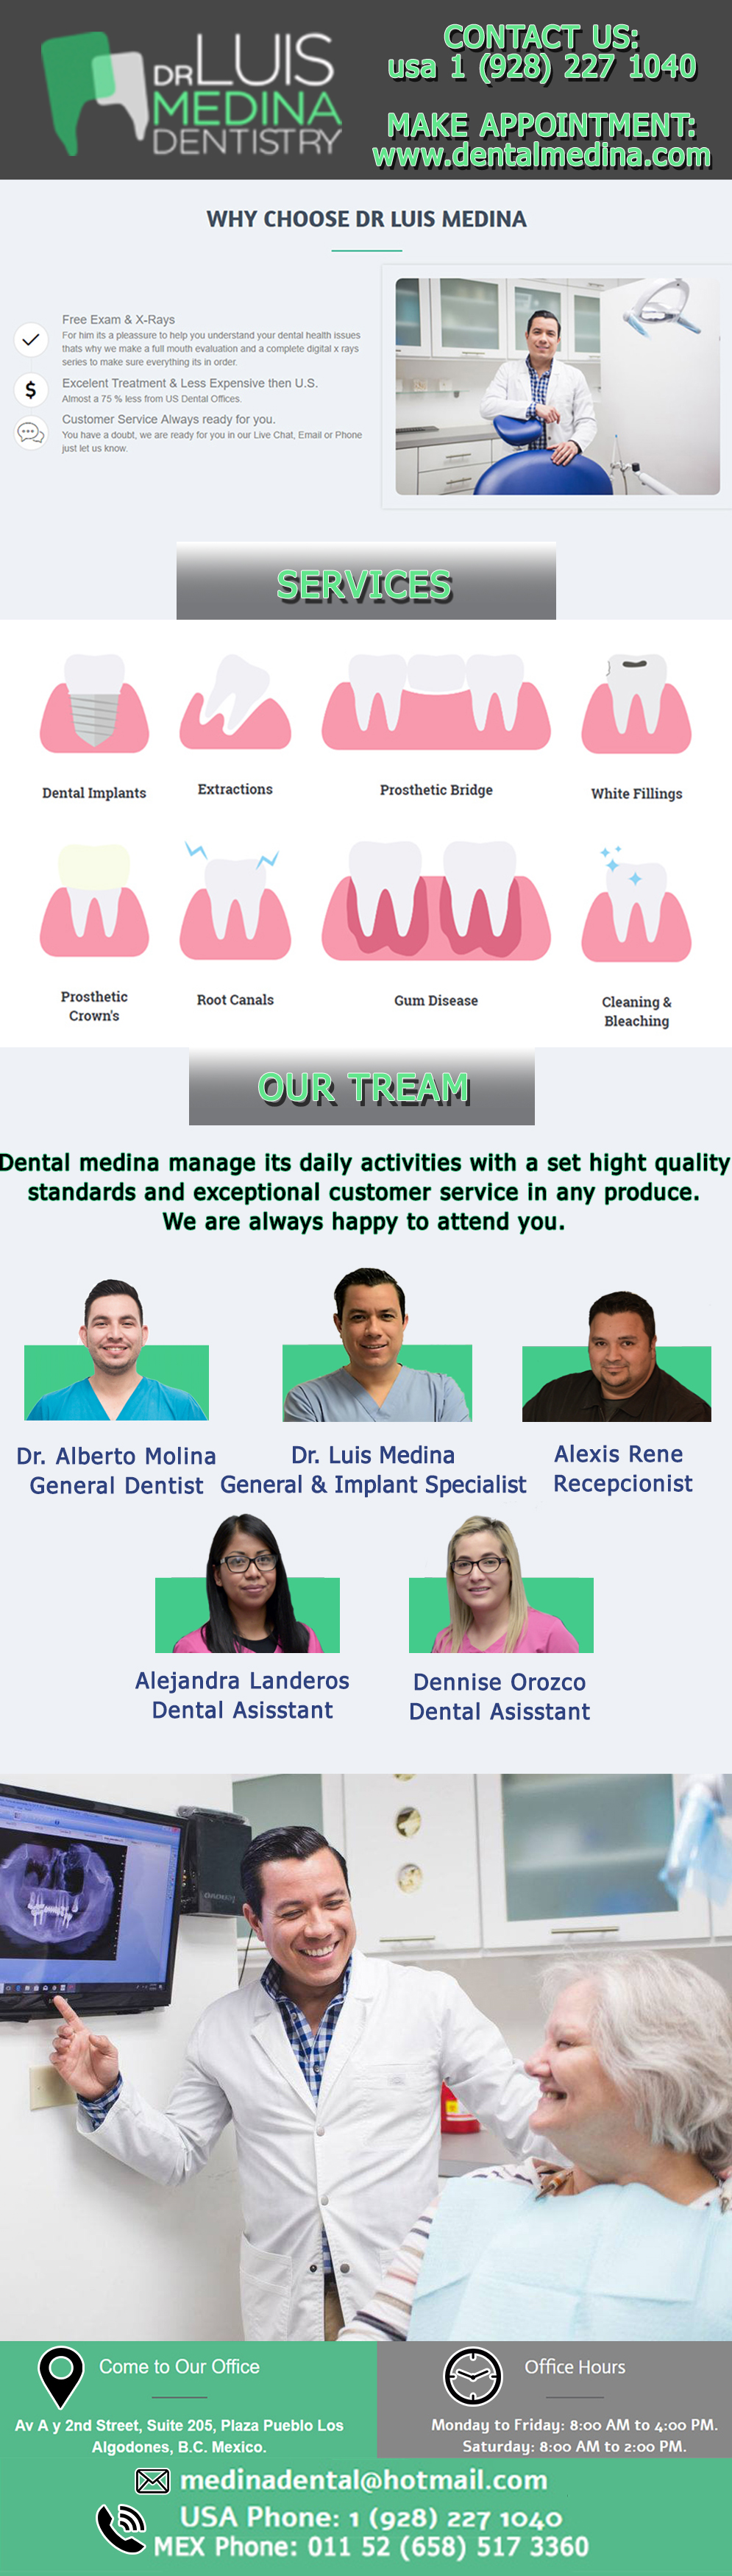 Dental Office DR. LUIS MEDINA in Algodones  in Algodones  Cosmetic Dentistry